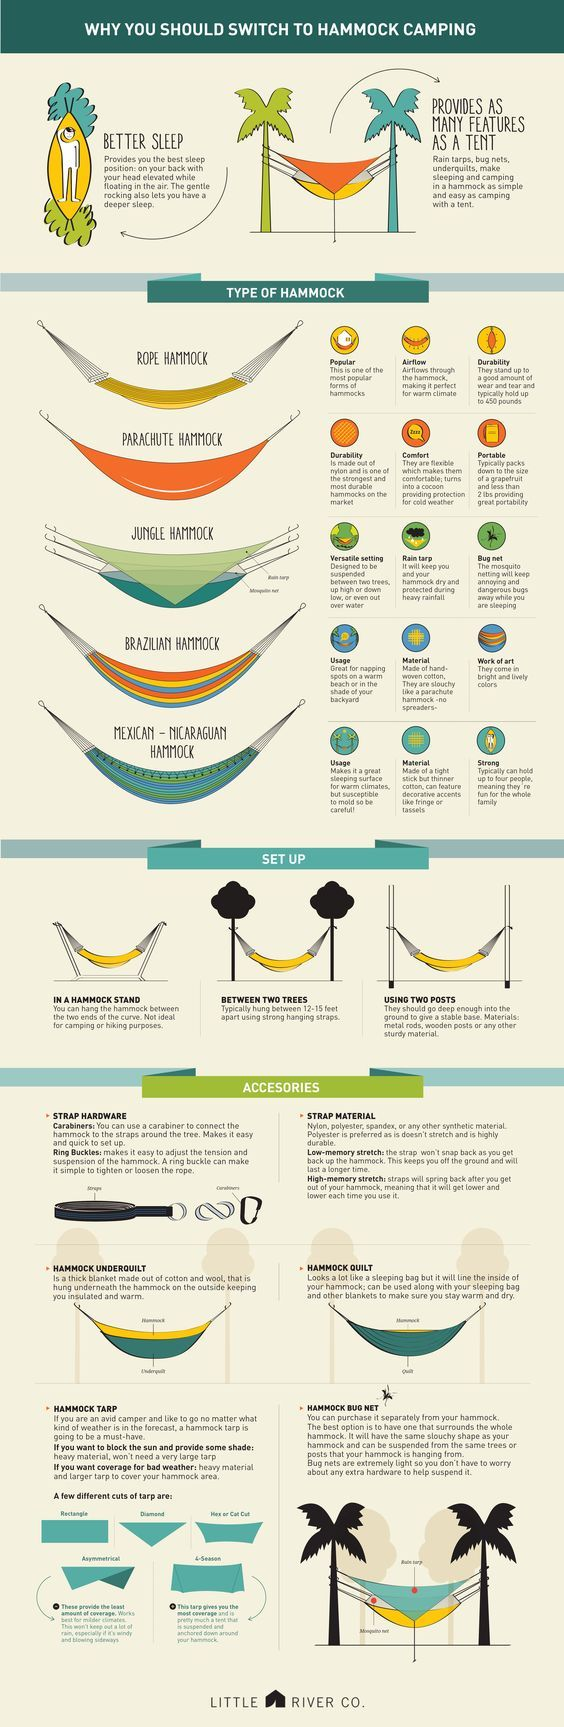 Photo of Different Types Of Hammocks |Useful Hammock Accessories